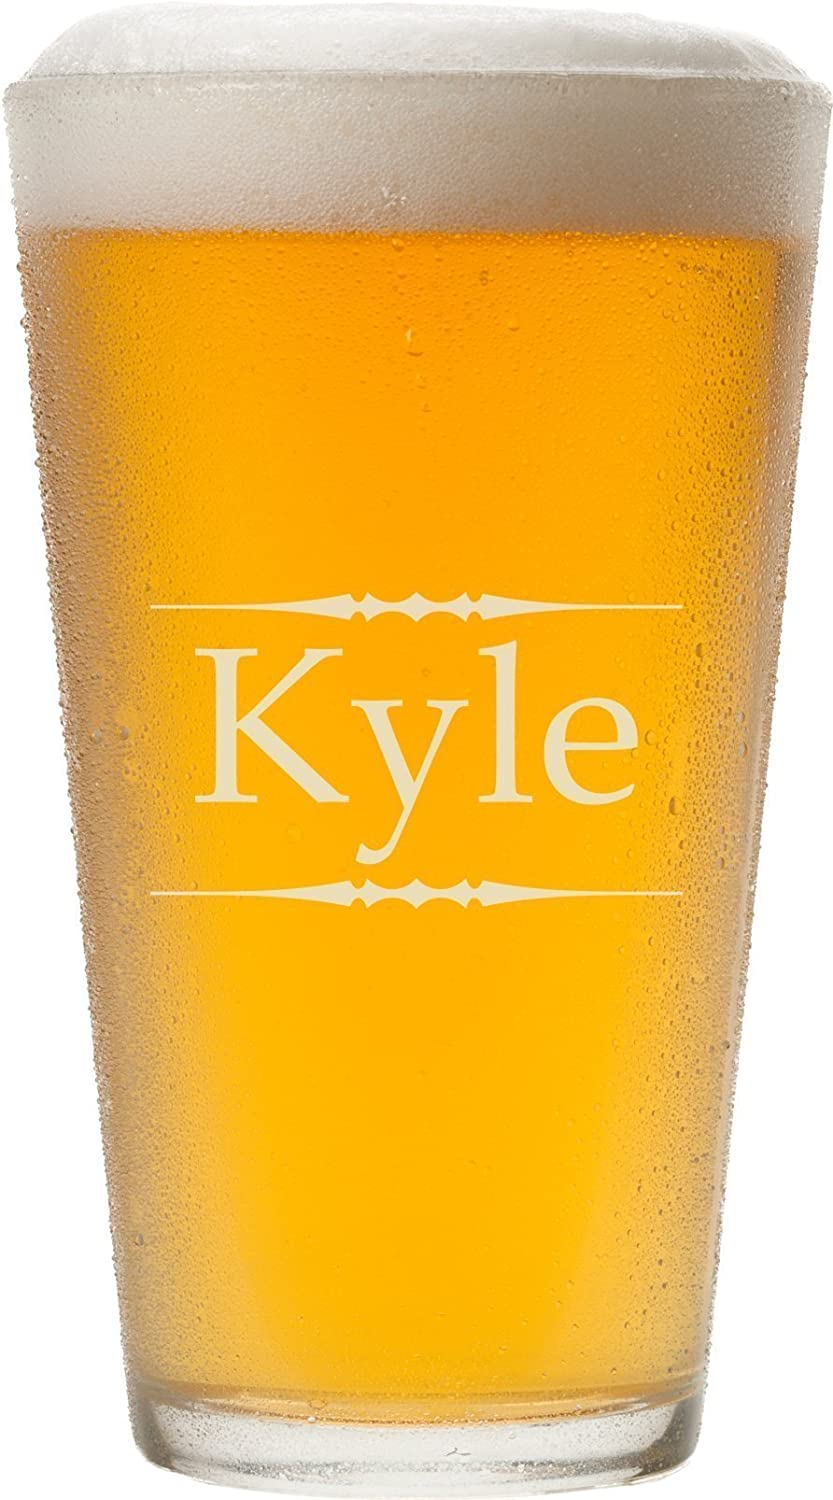 Personalized Pint Glass with Laser Engraving, 16 oz - PG04